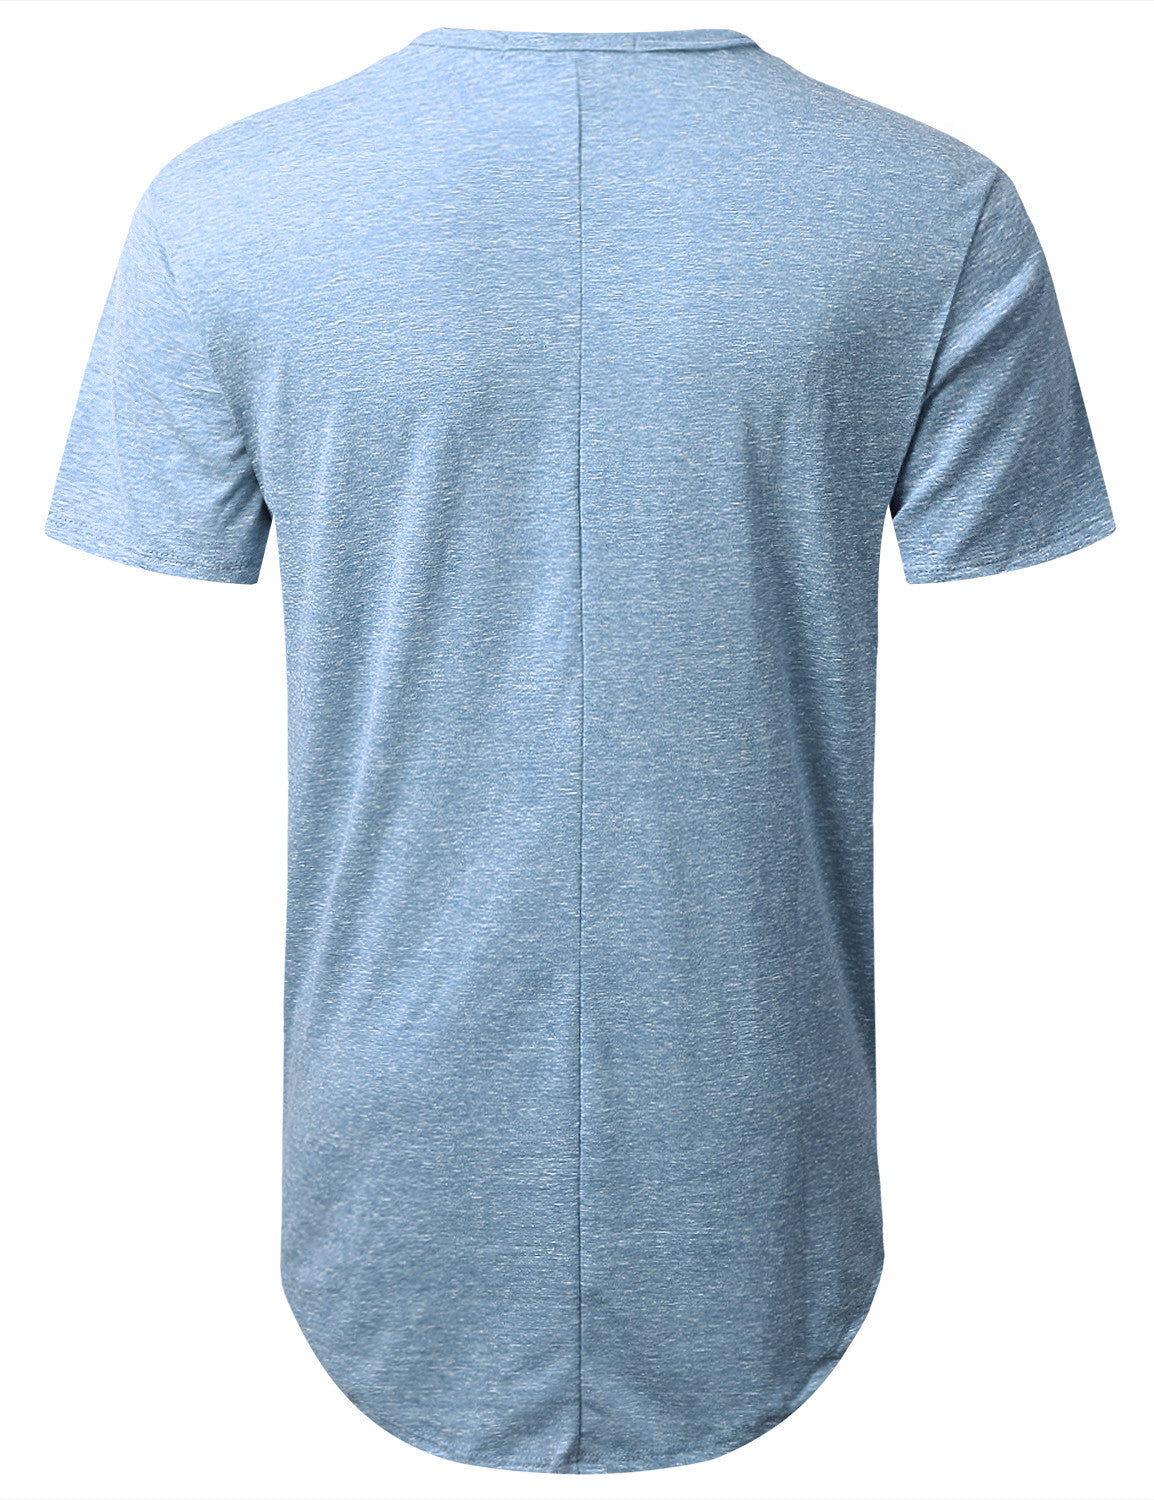 LTBLUE Melange Longline Pocket T-shirt - URBANCREWS